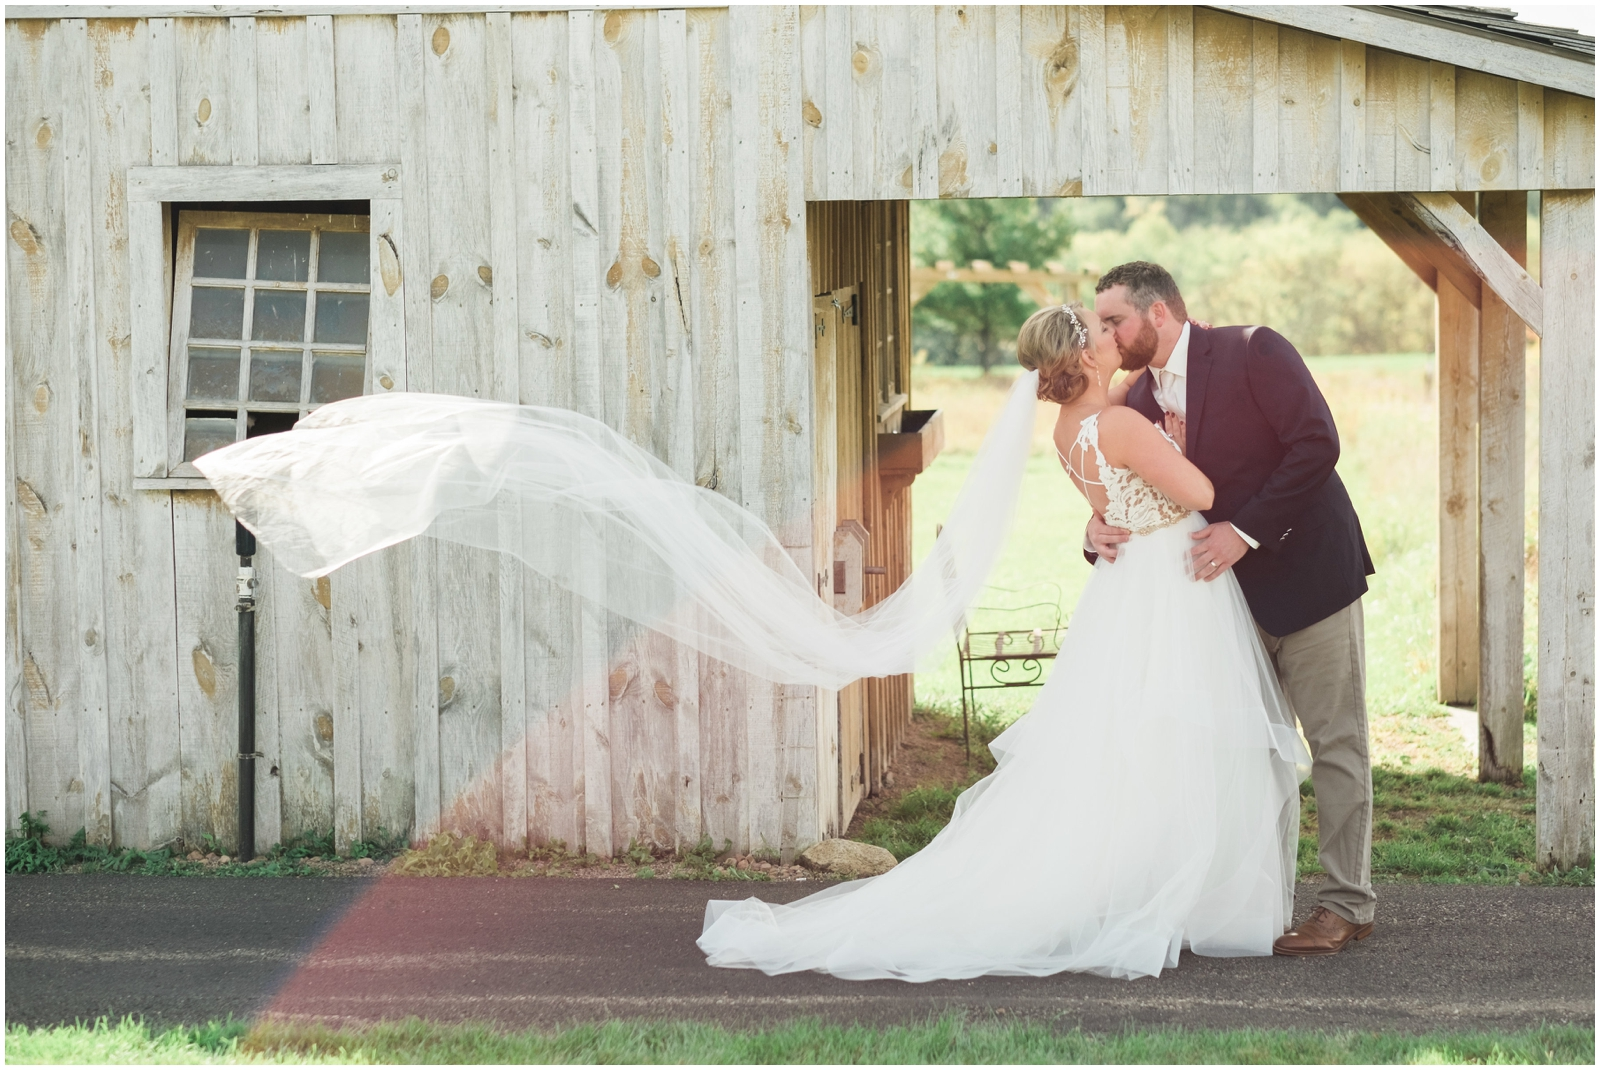 Minnesota-Wedding-Venue- Chaska-MN-Rustic-Barn-Weddings_0559.jpg